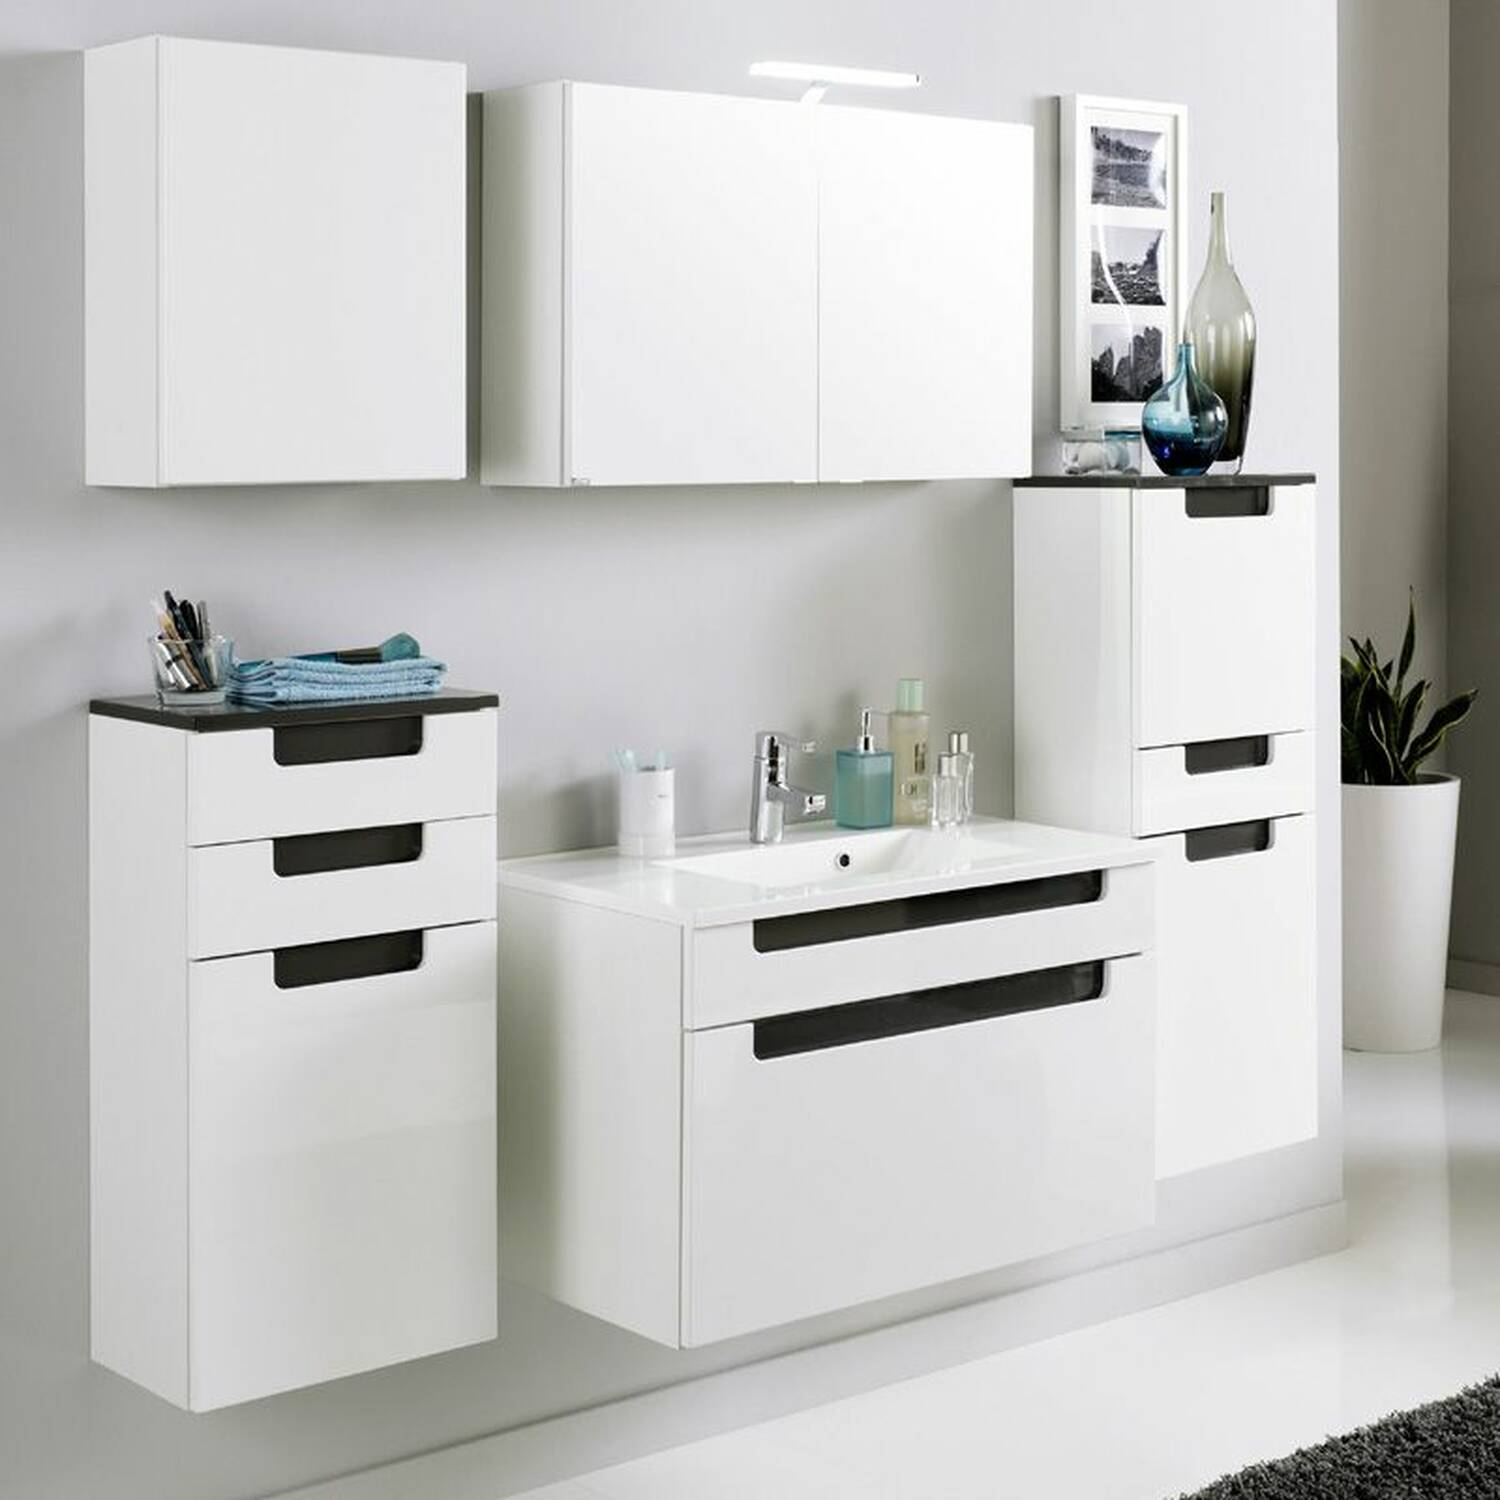 unterschrank merano 03 hochglanz wei grau b. Black Bedroom Furniture Sets. Home Design Ideas